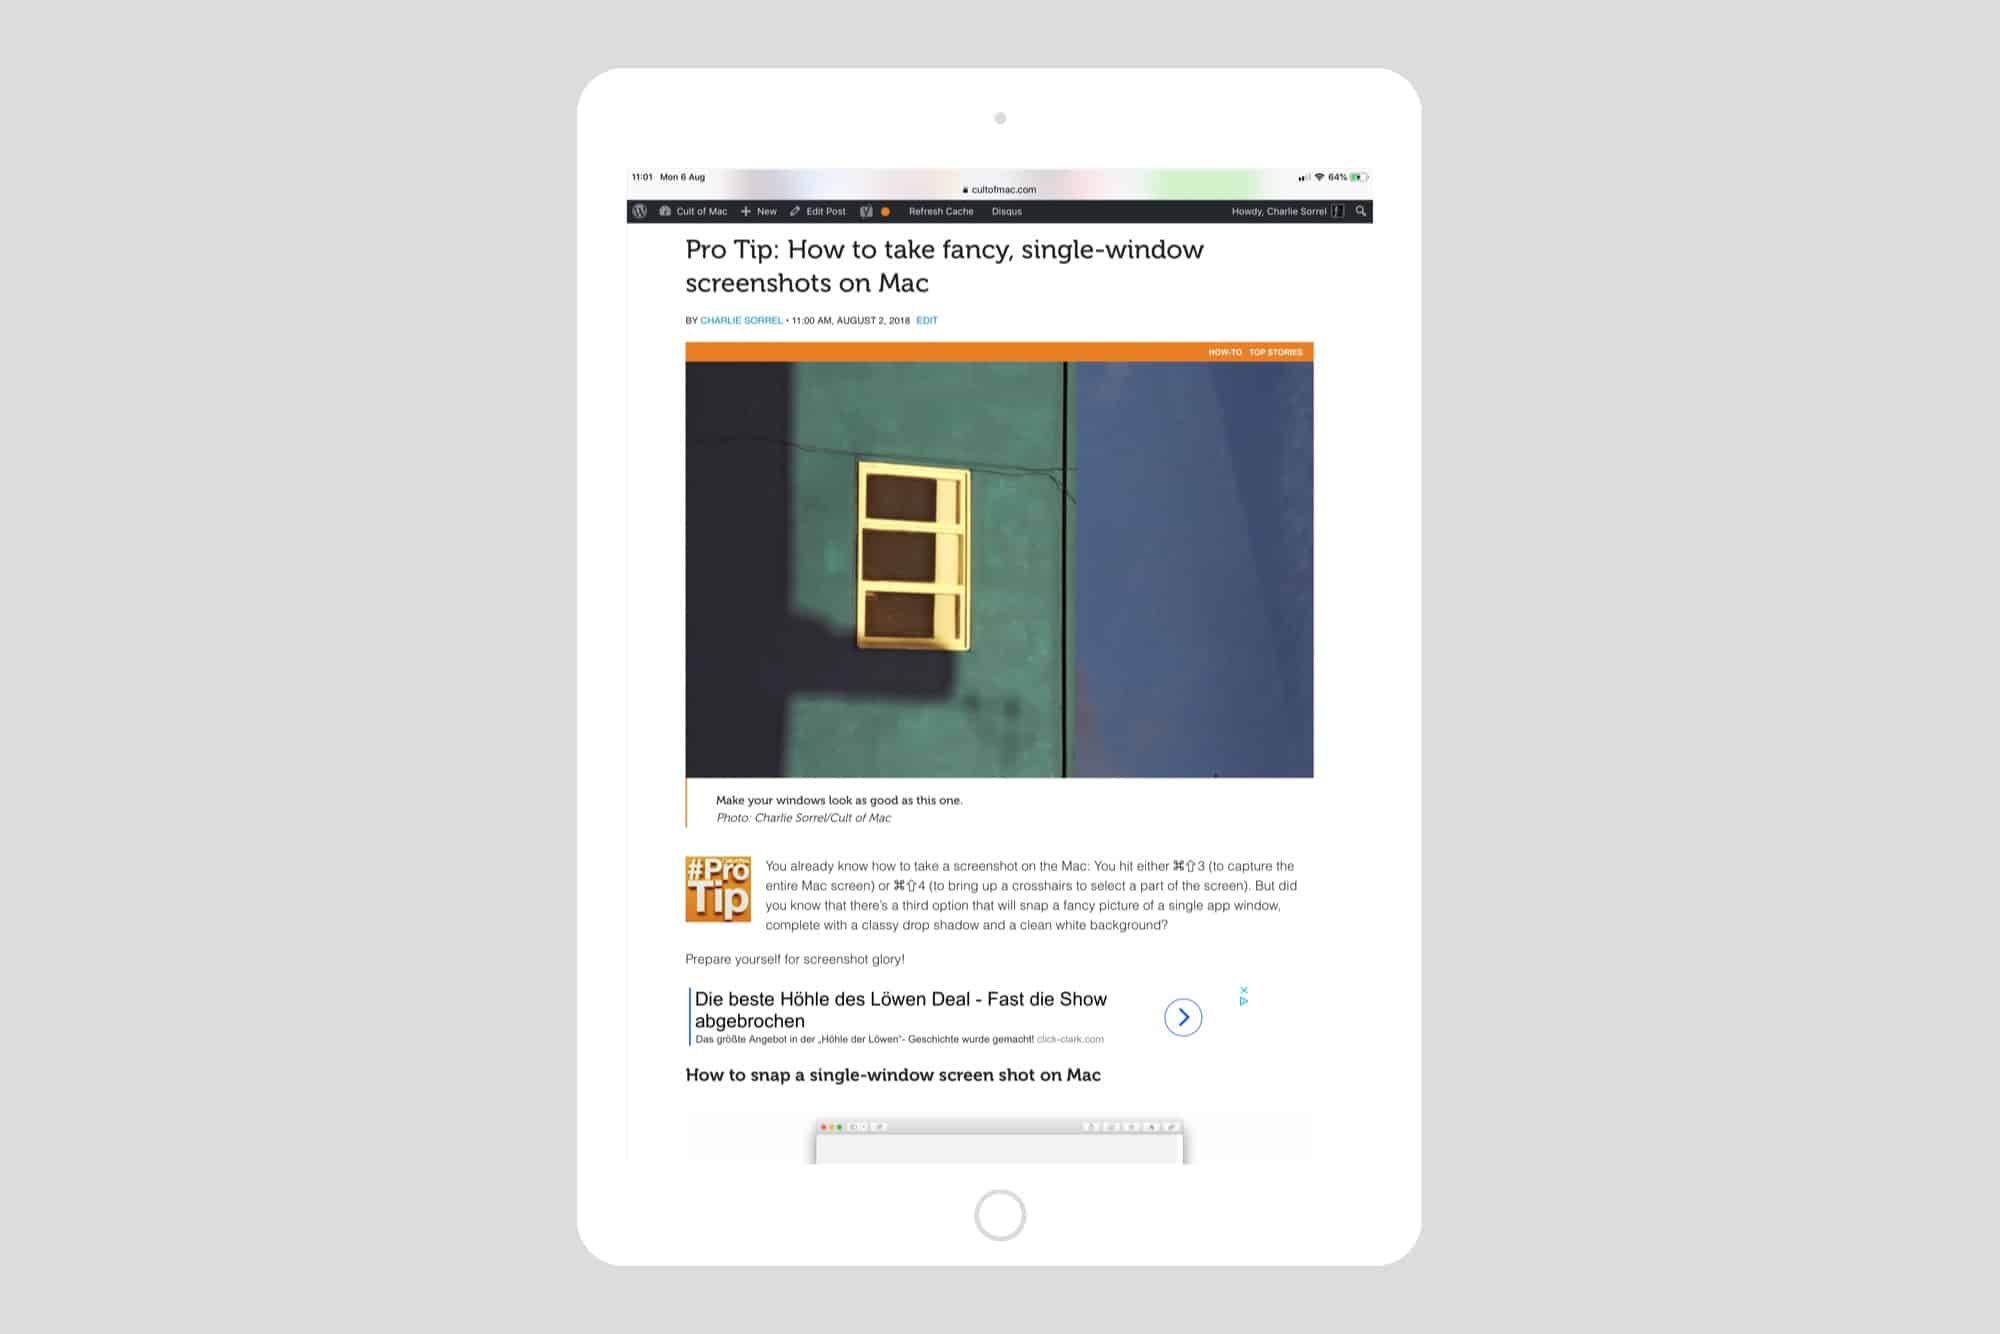 dotEPUB is the best way to save and annotate websites in